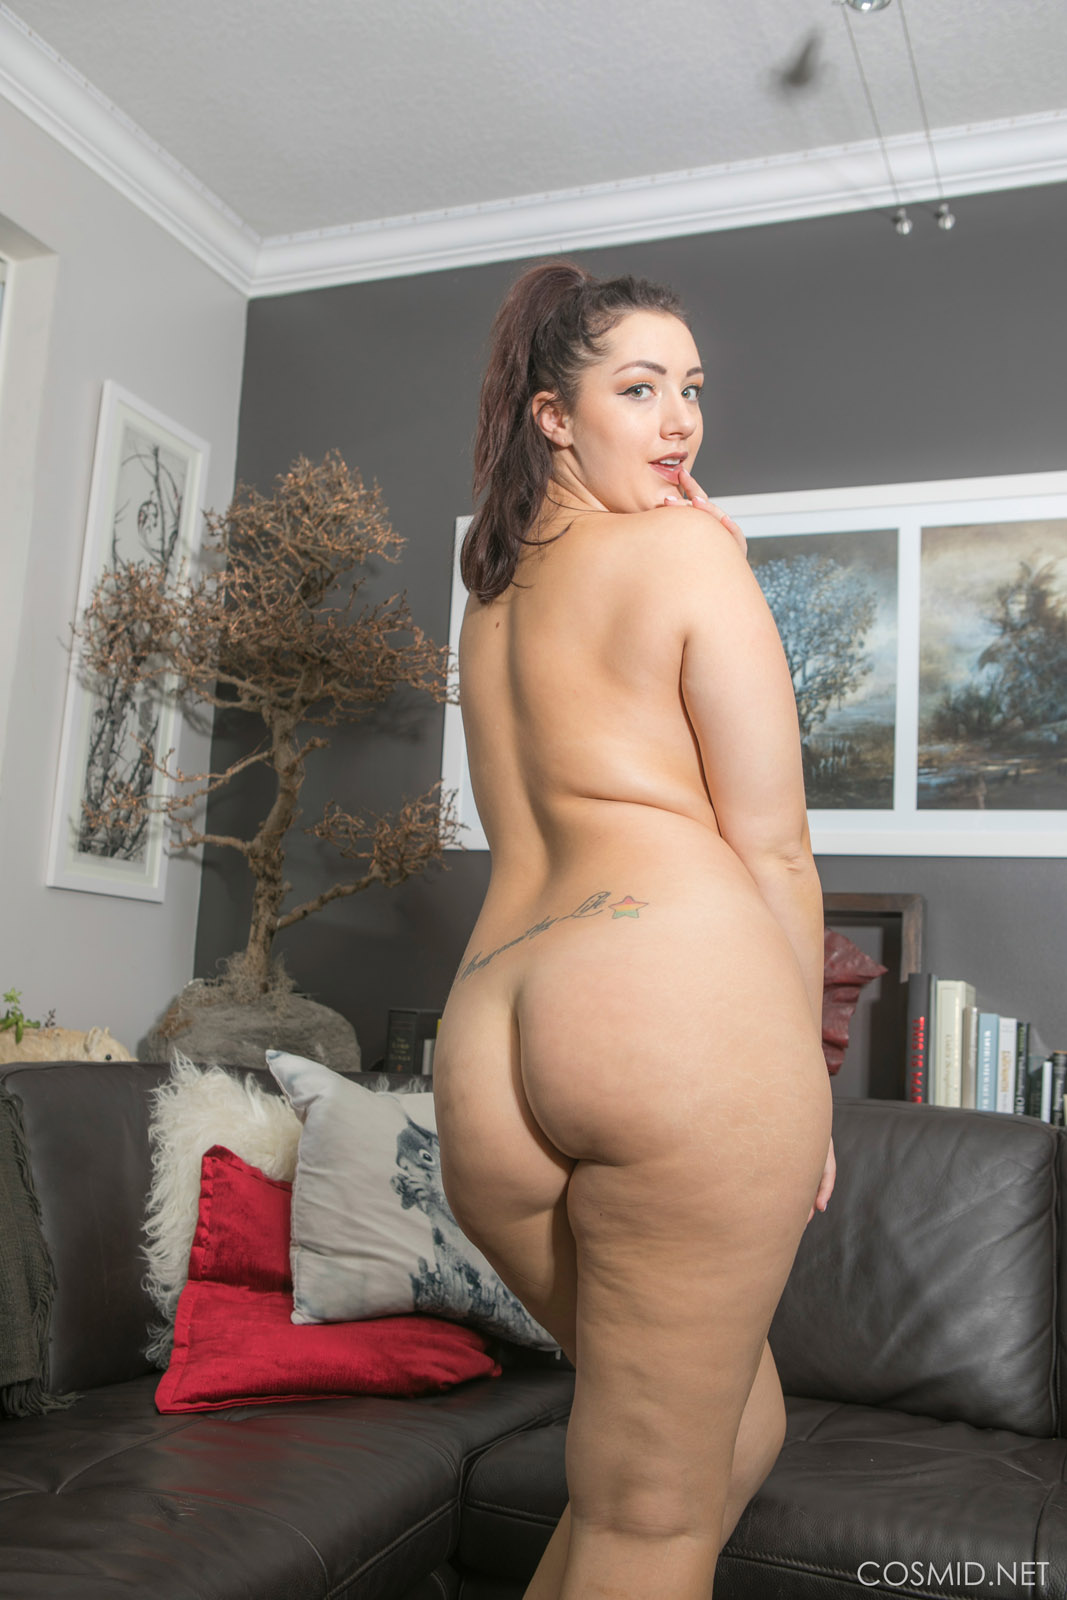 Pawg milf takes it in the ass while hubby takes pics - 2 2